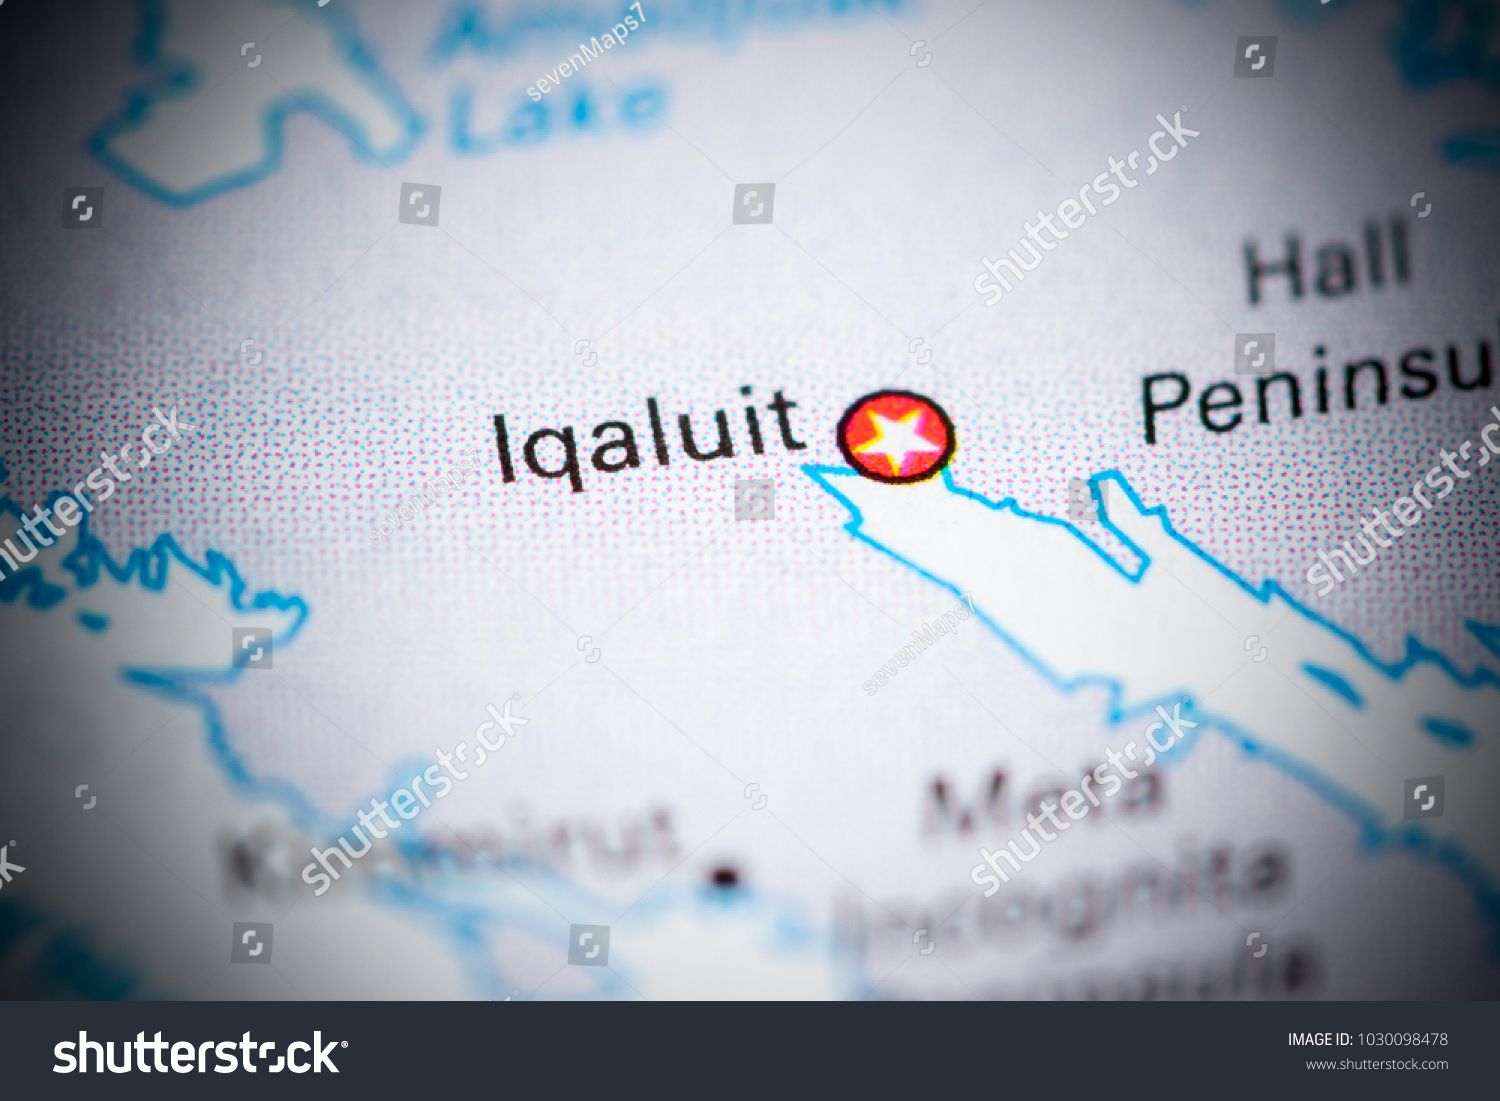 Iqaluit Canada Map.Iqaluit Canada On Map Stock Photo Edit Now 1030098478 Shutterstock